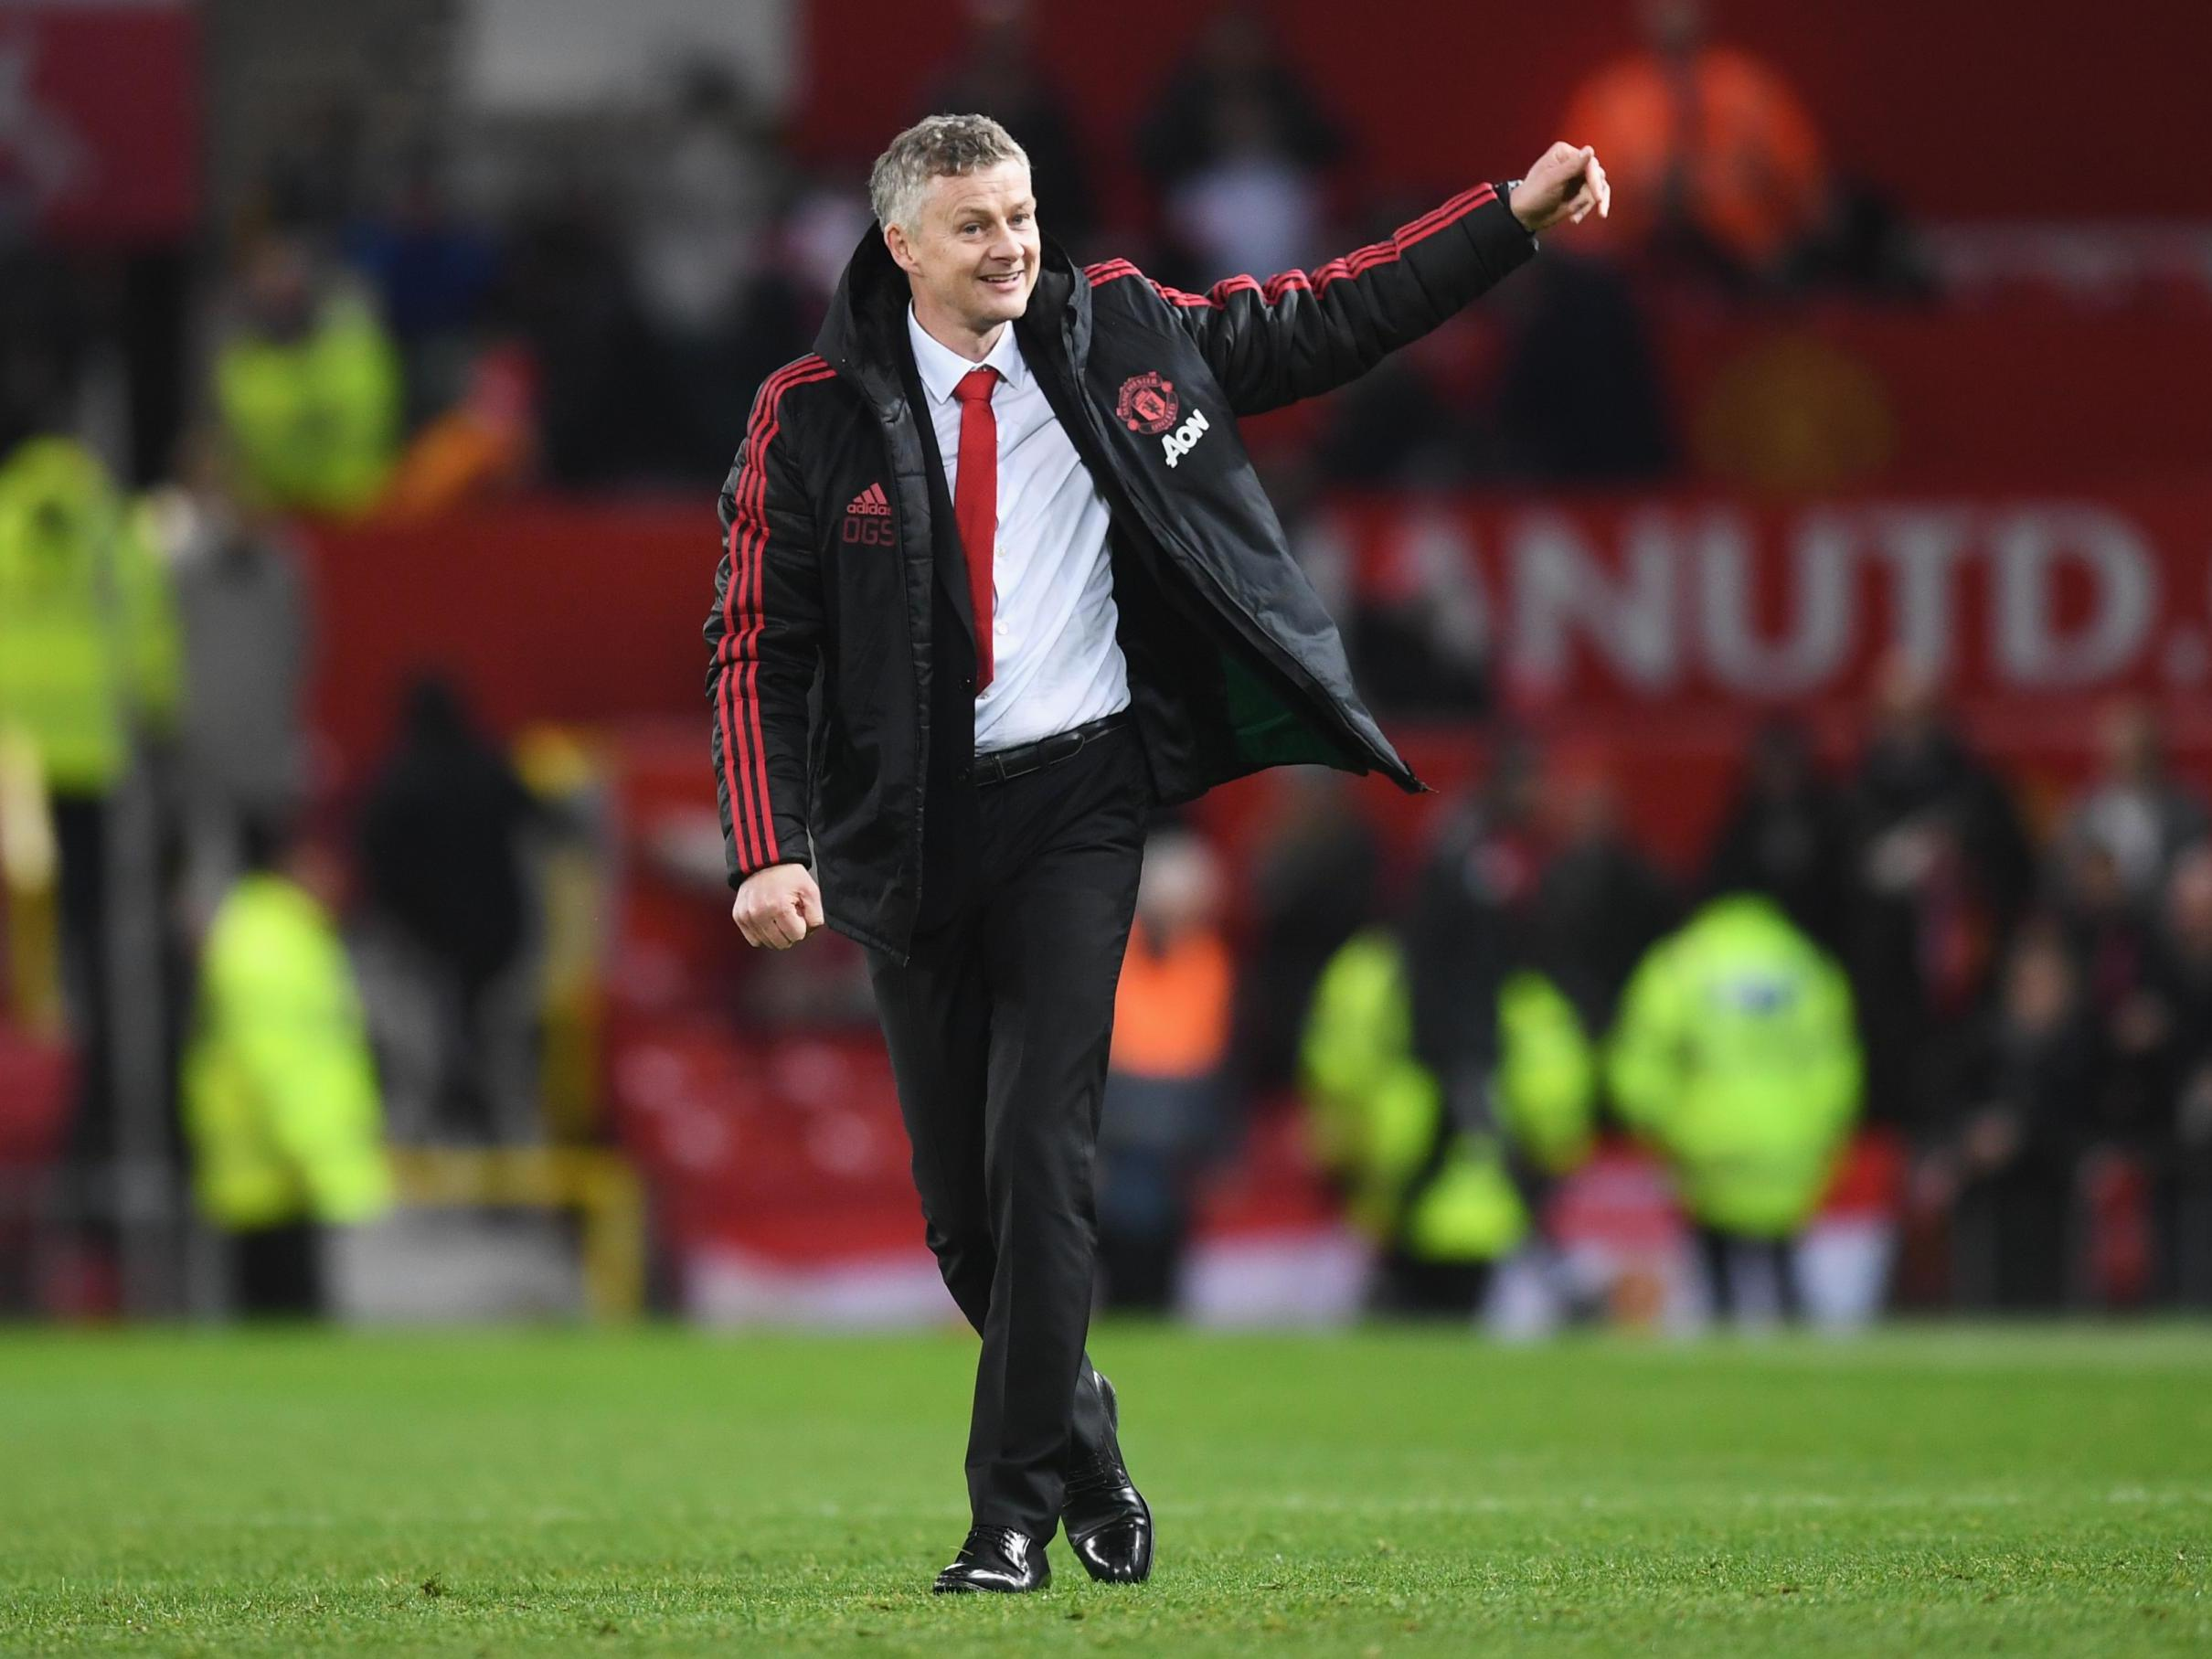 Man U Picture: Manchester United In The January Transfer Window: New